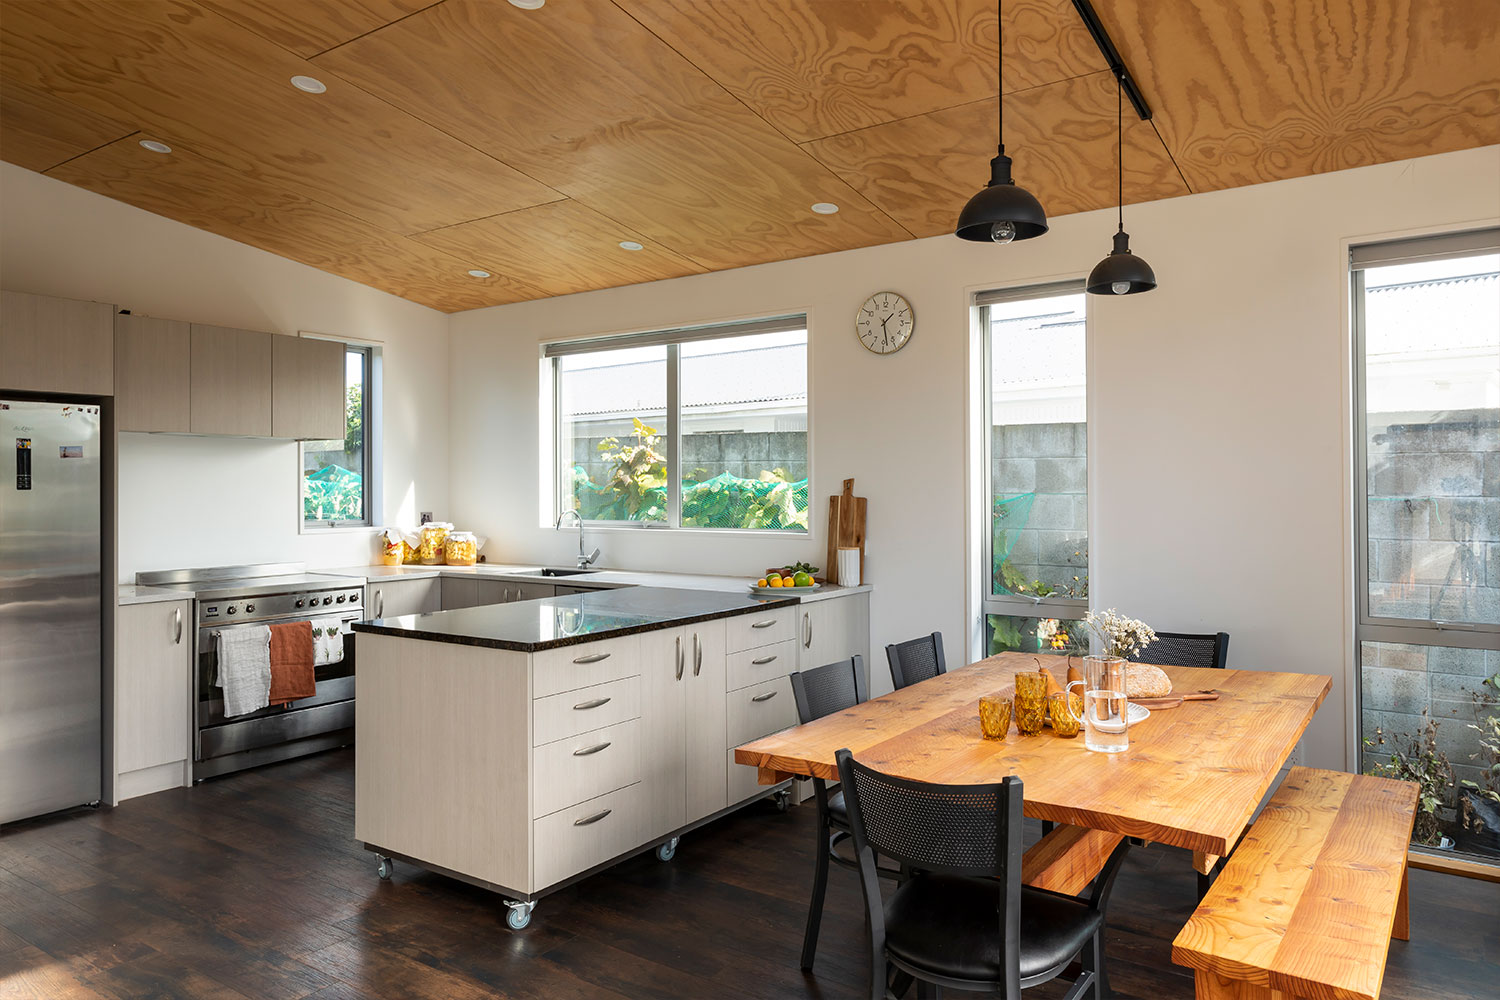 https://www.benchmarkhomes.co.nz/wp-content/uploads/2021/07/Projects-Ross-51500-x-1000-High-Res.jpg